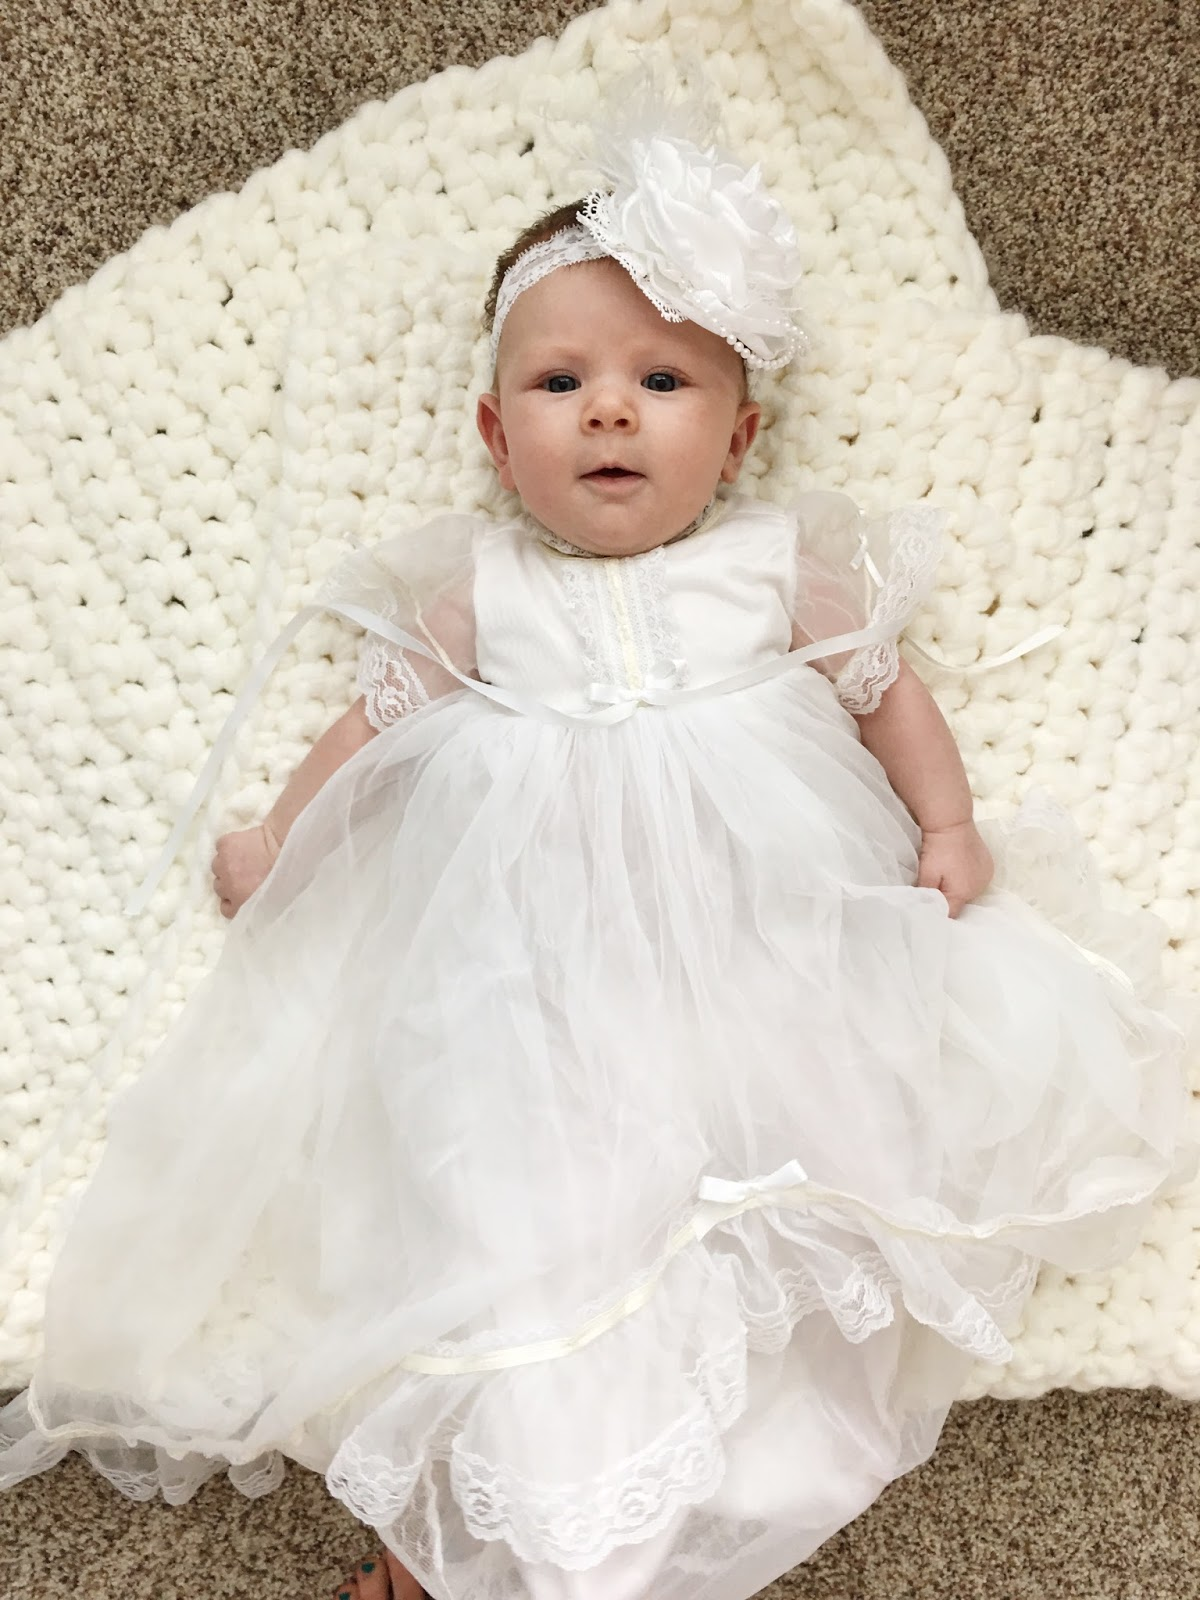 Baby Blessing, Baby Blessing Dress, Baby Blessing Headband